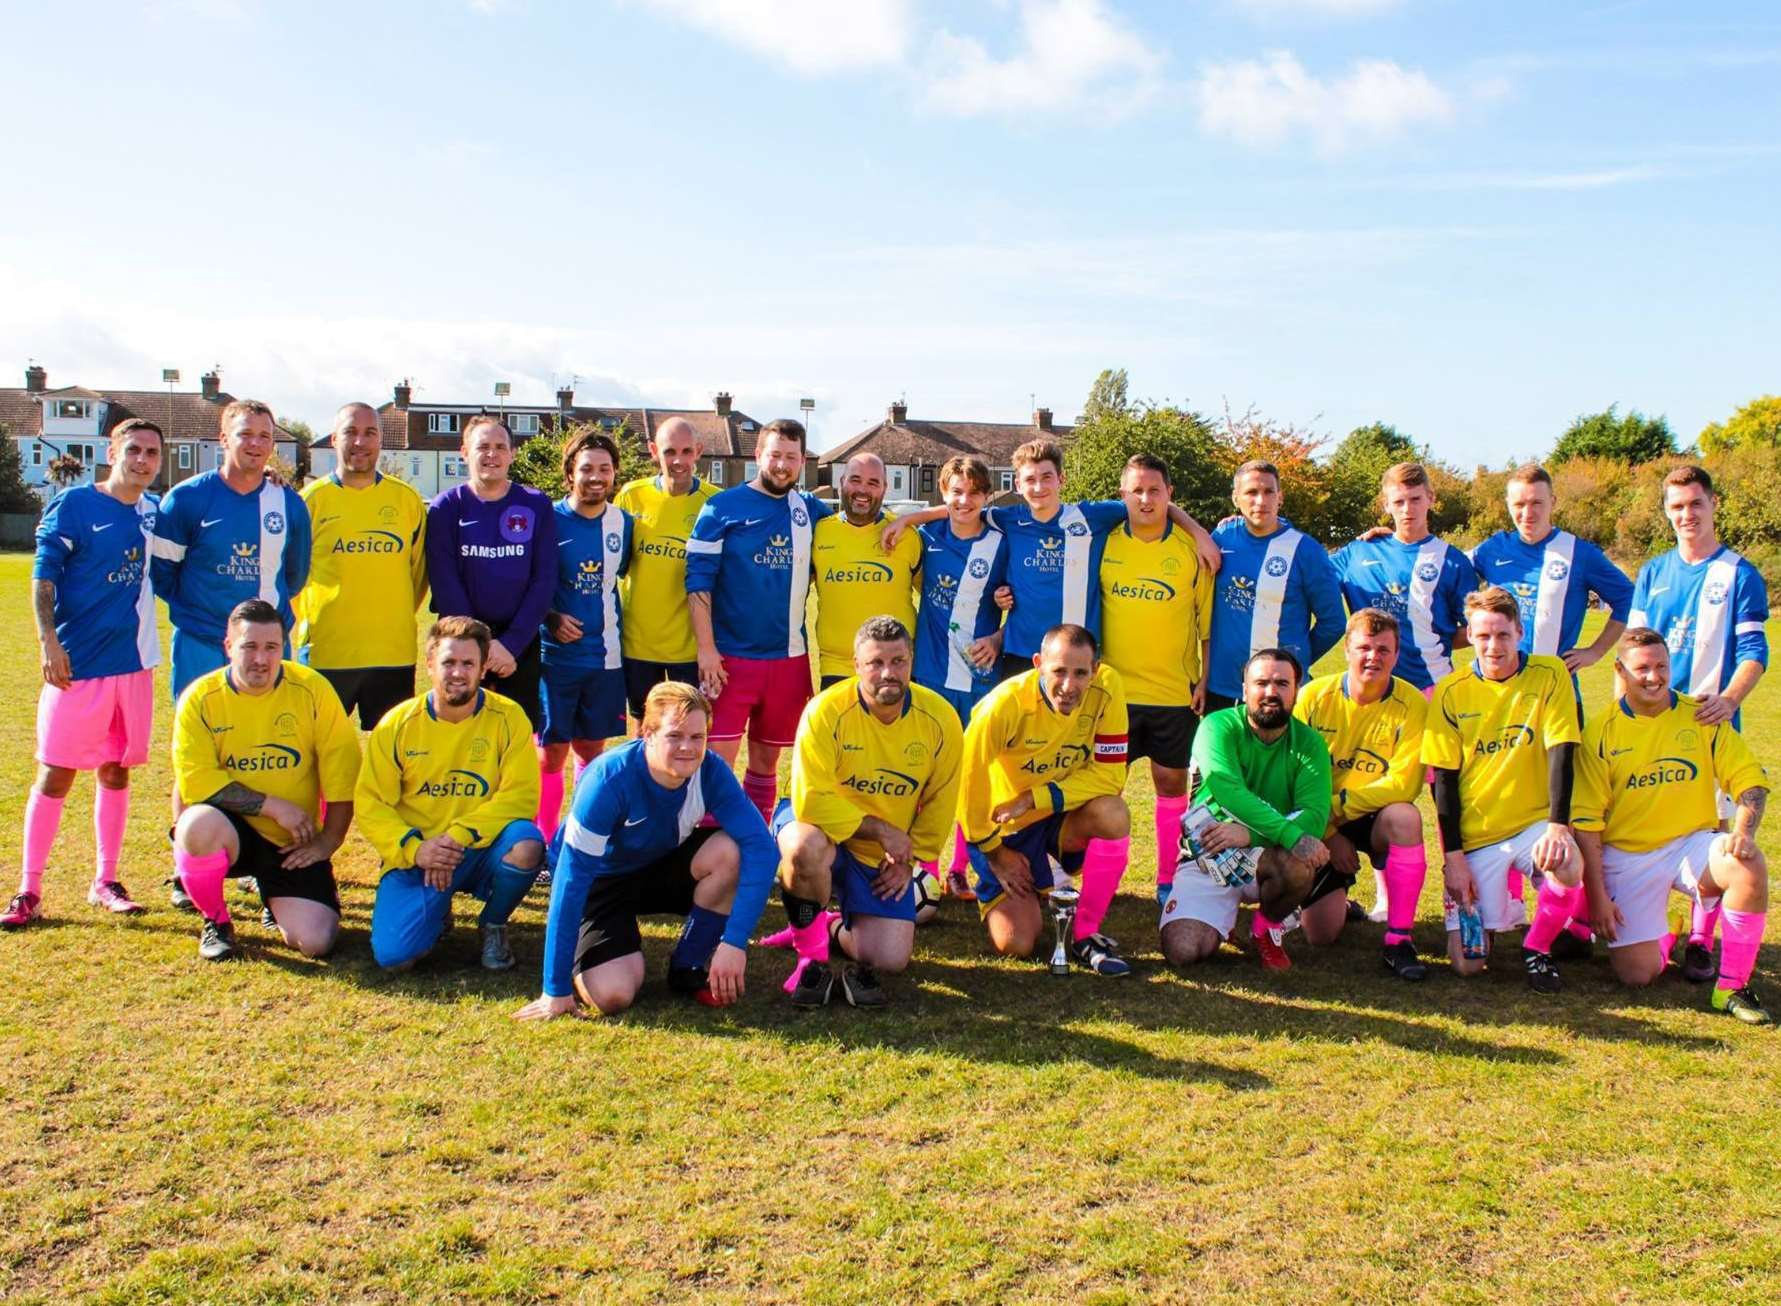 A charity football match was held at Sheerness East Working Men's Club, Halfway, in memory of Imogen Harty-Mulheron. Picture: Jemma Arbin